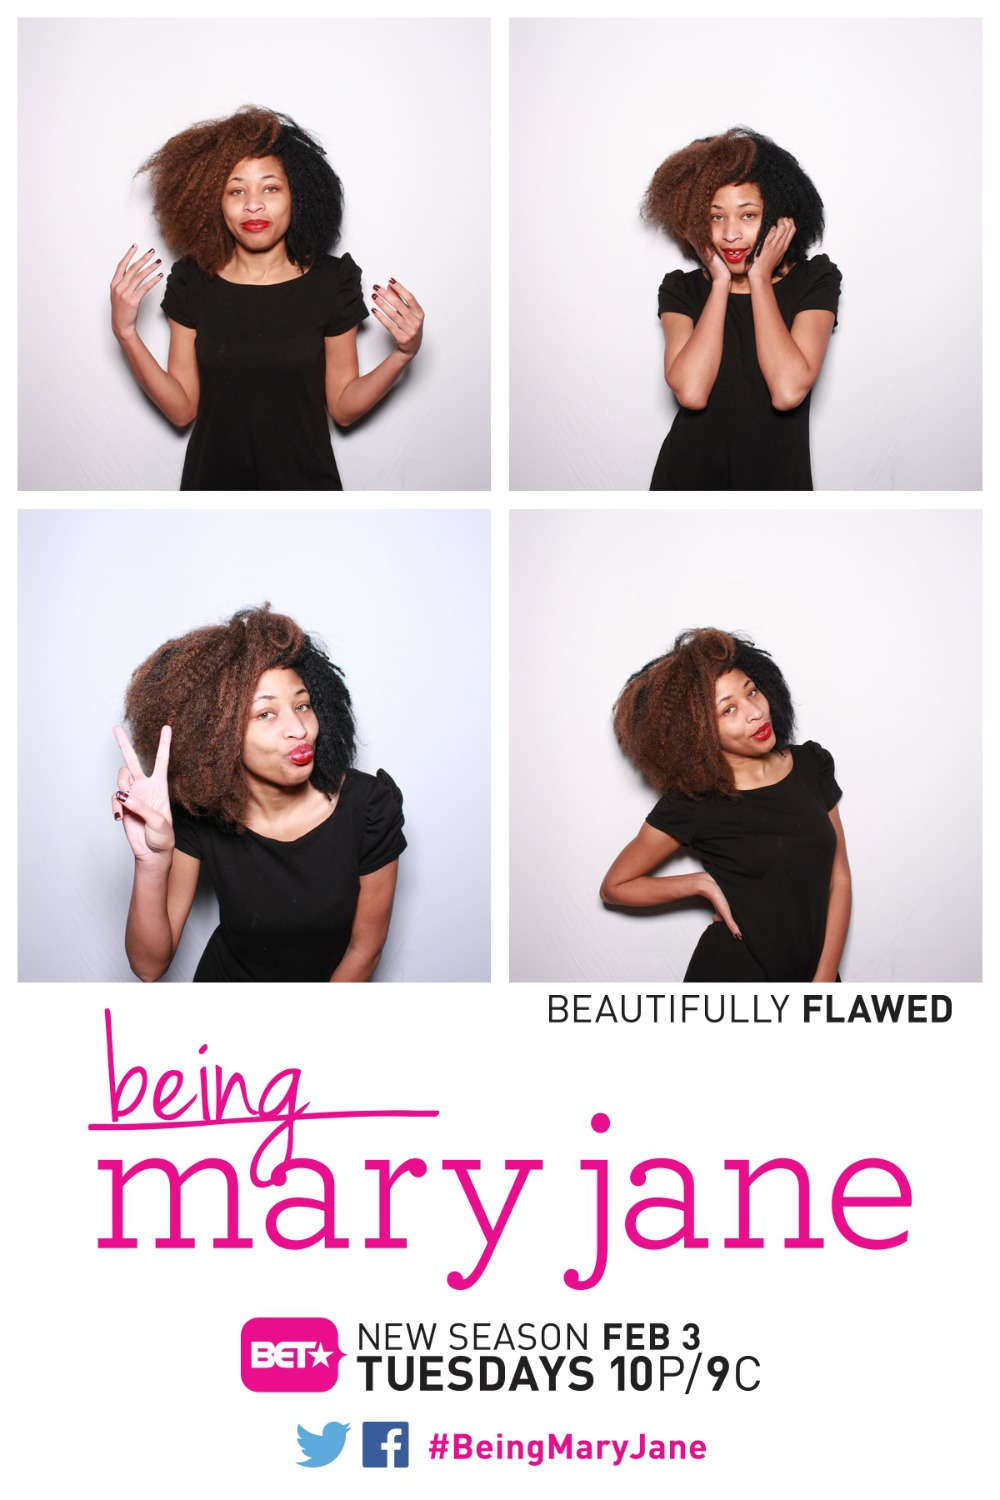 BEING-MARY-JANE-BET-SEASON-2-KIWI-THE-BEAUTY-BOOTH1